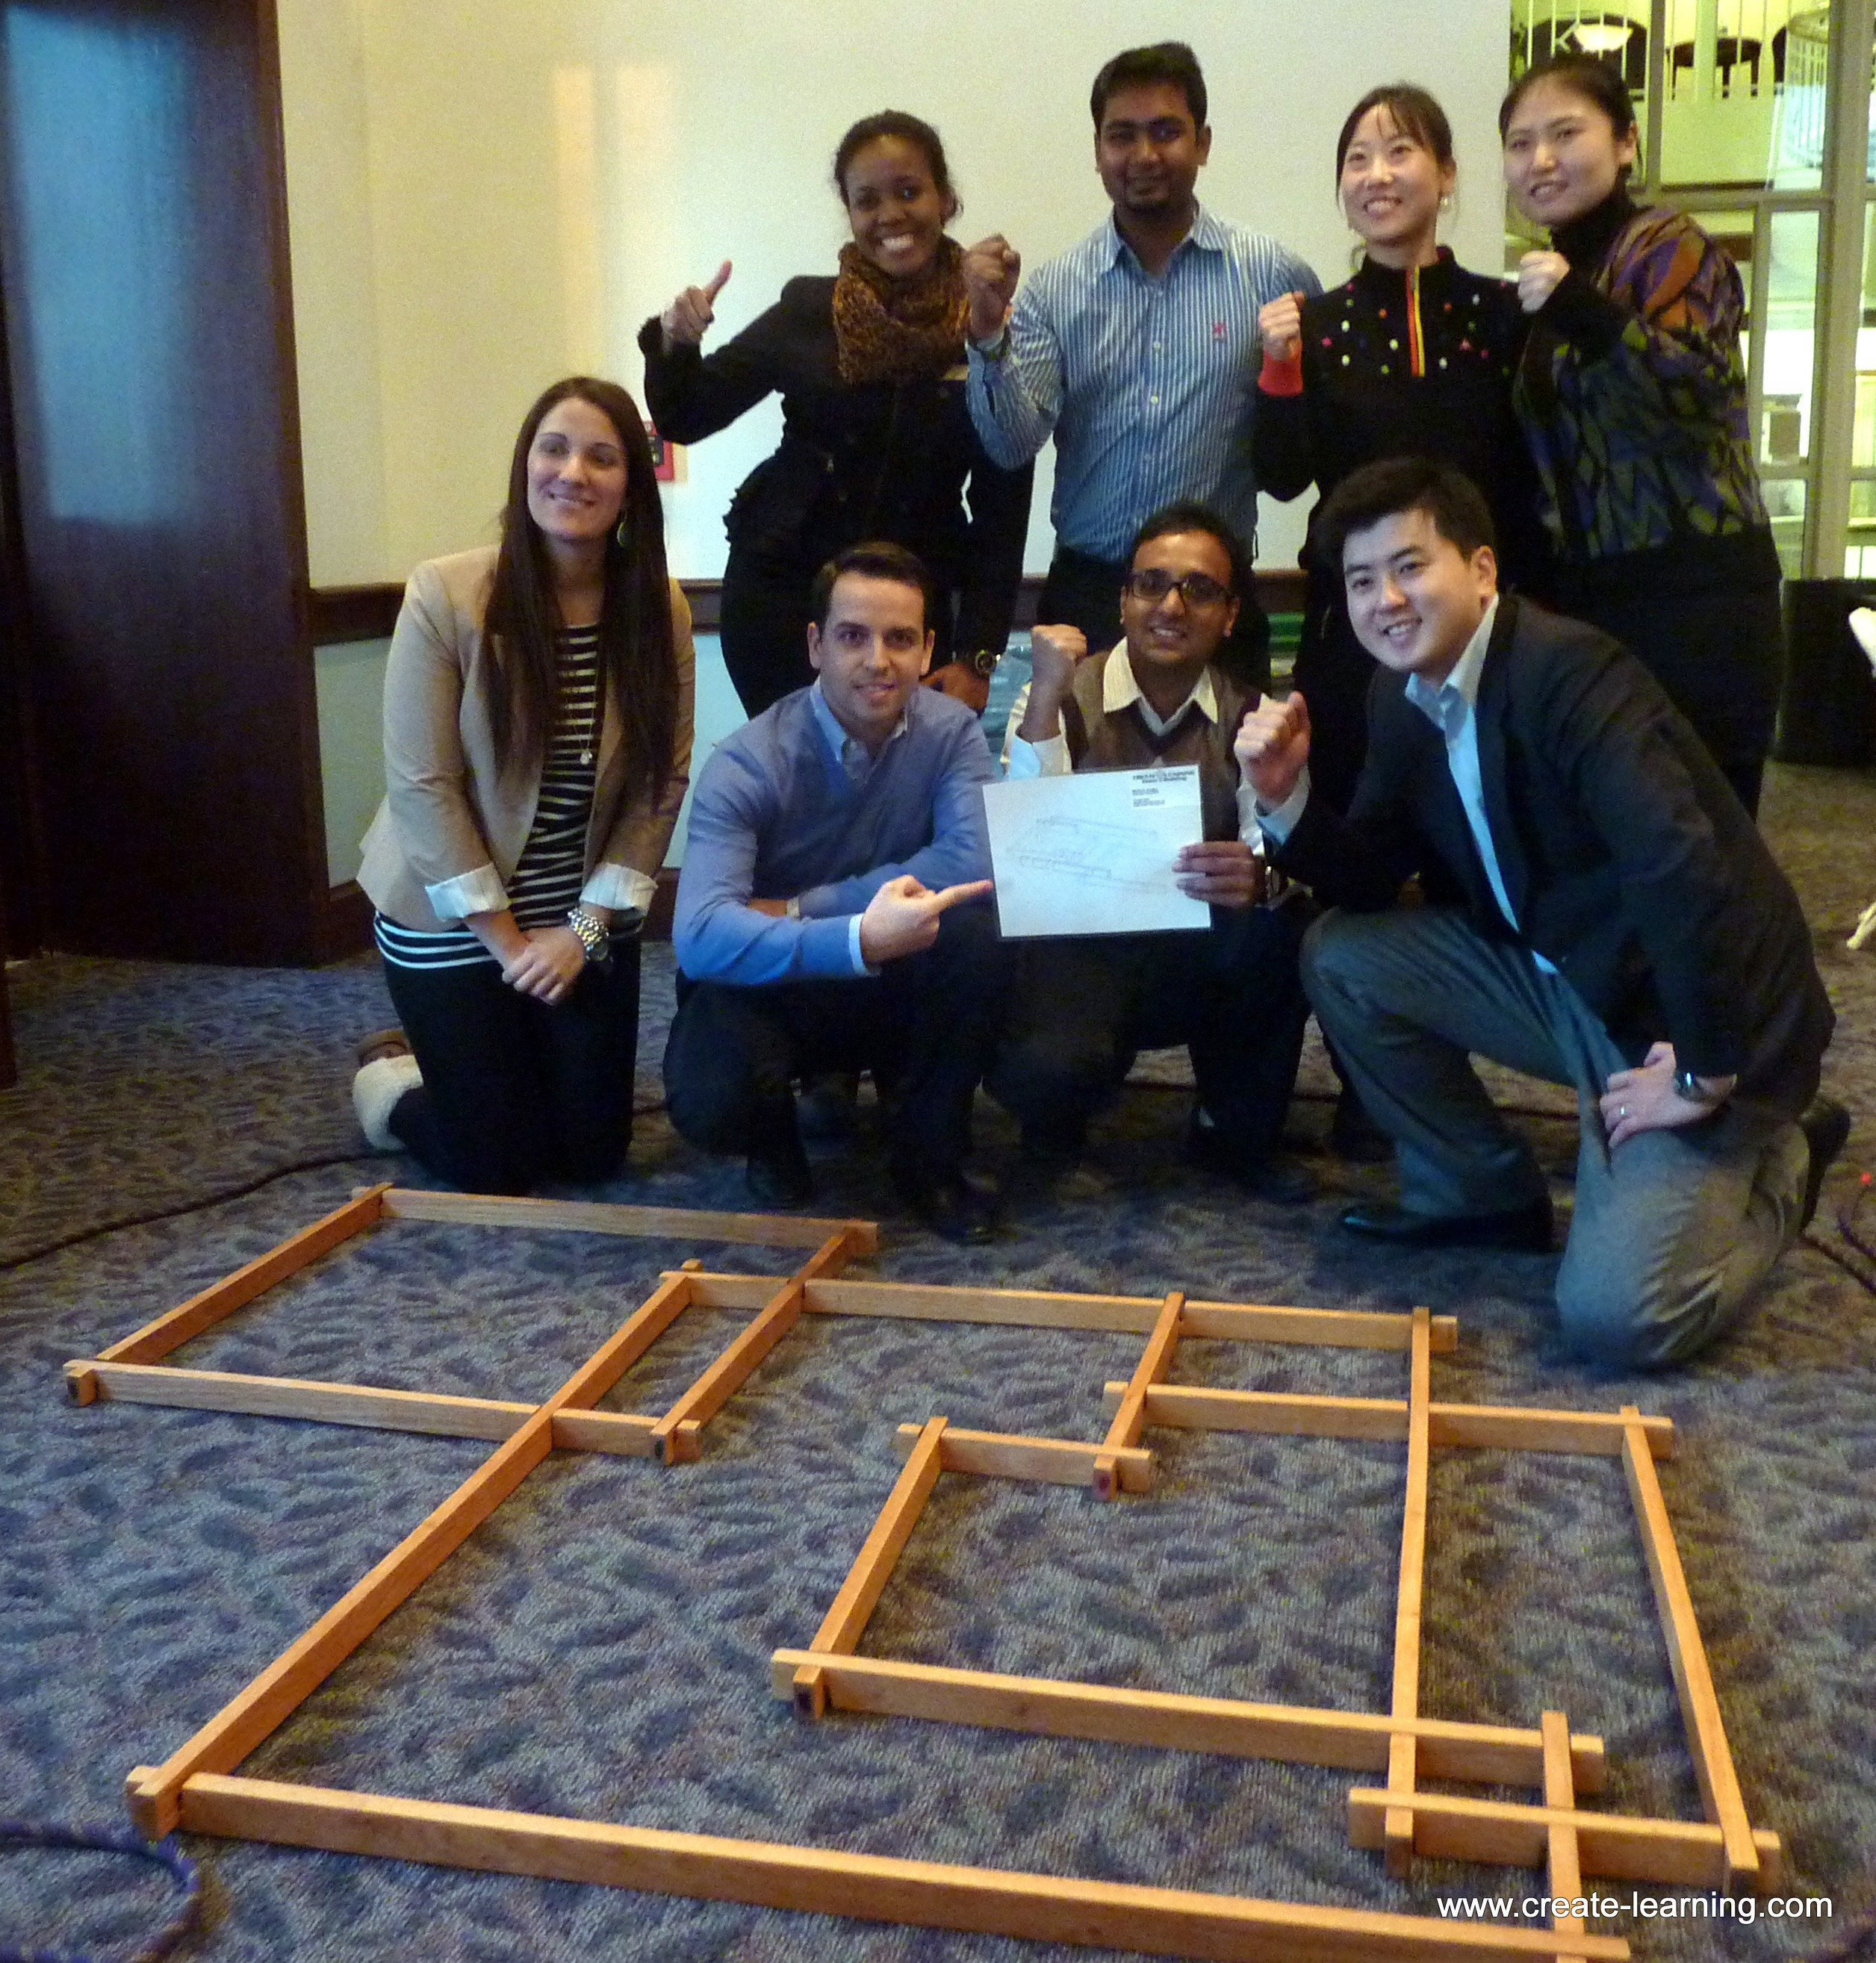 Motivational Quotes For Sports Teams: Team Building With University Of Rochester Simon Business